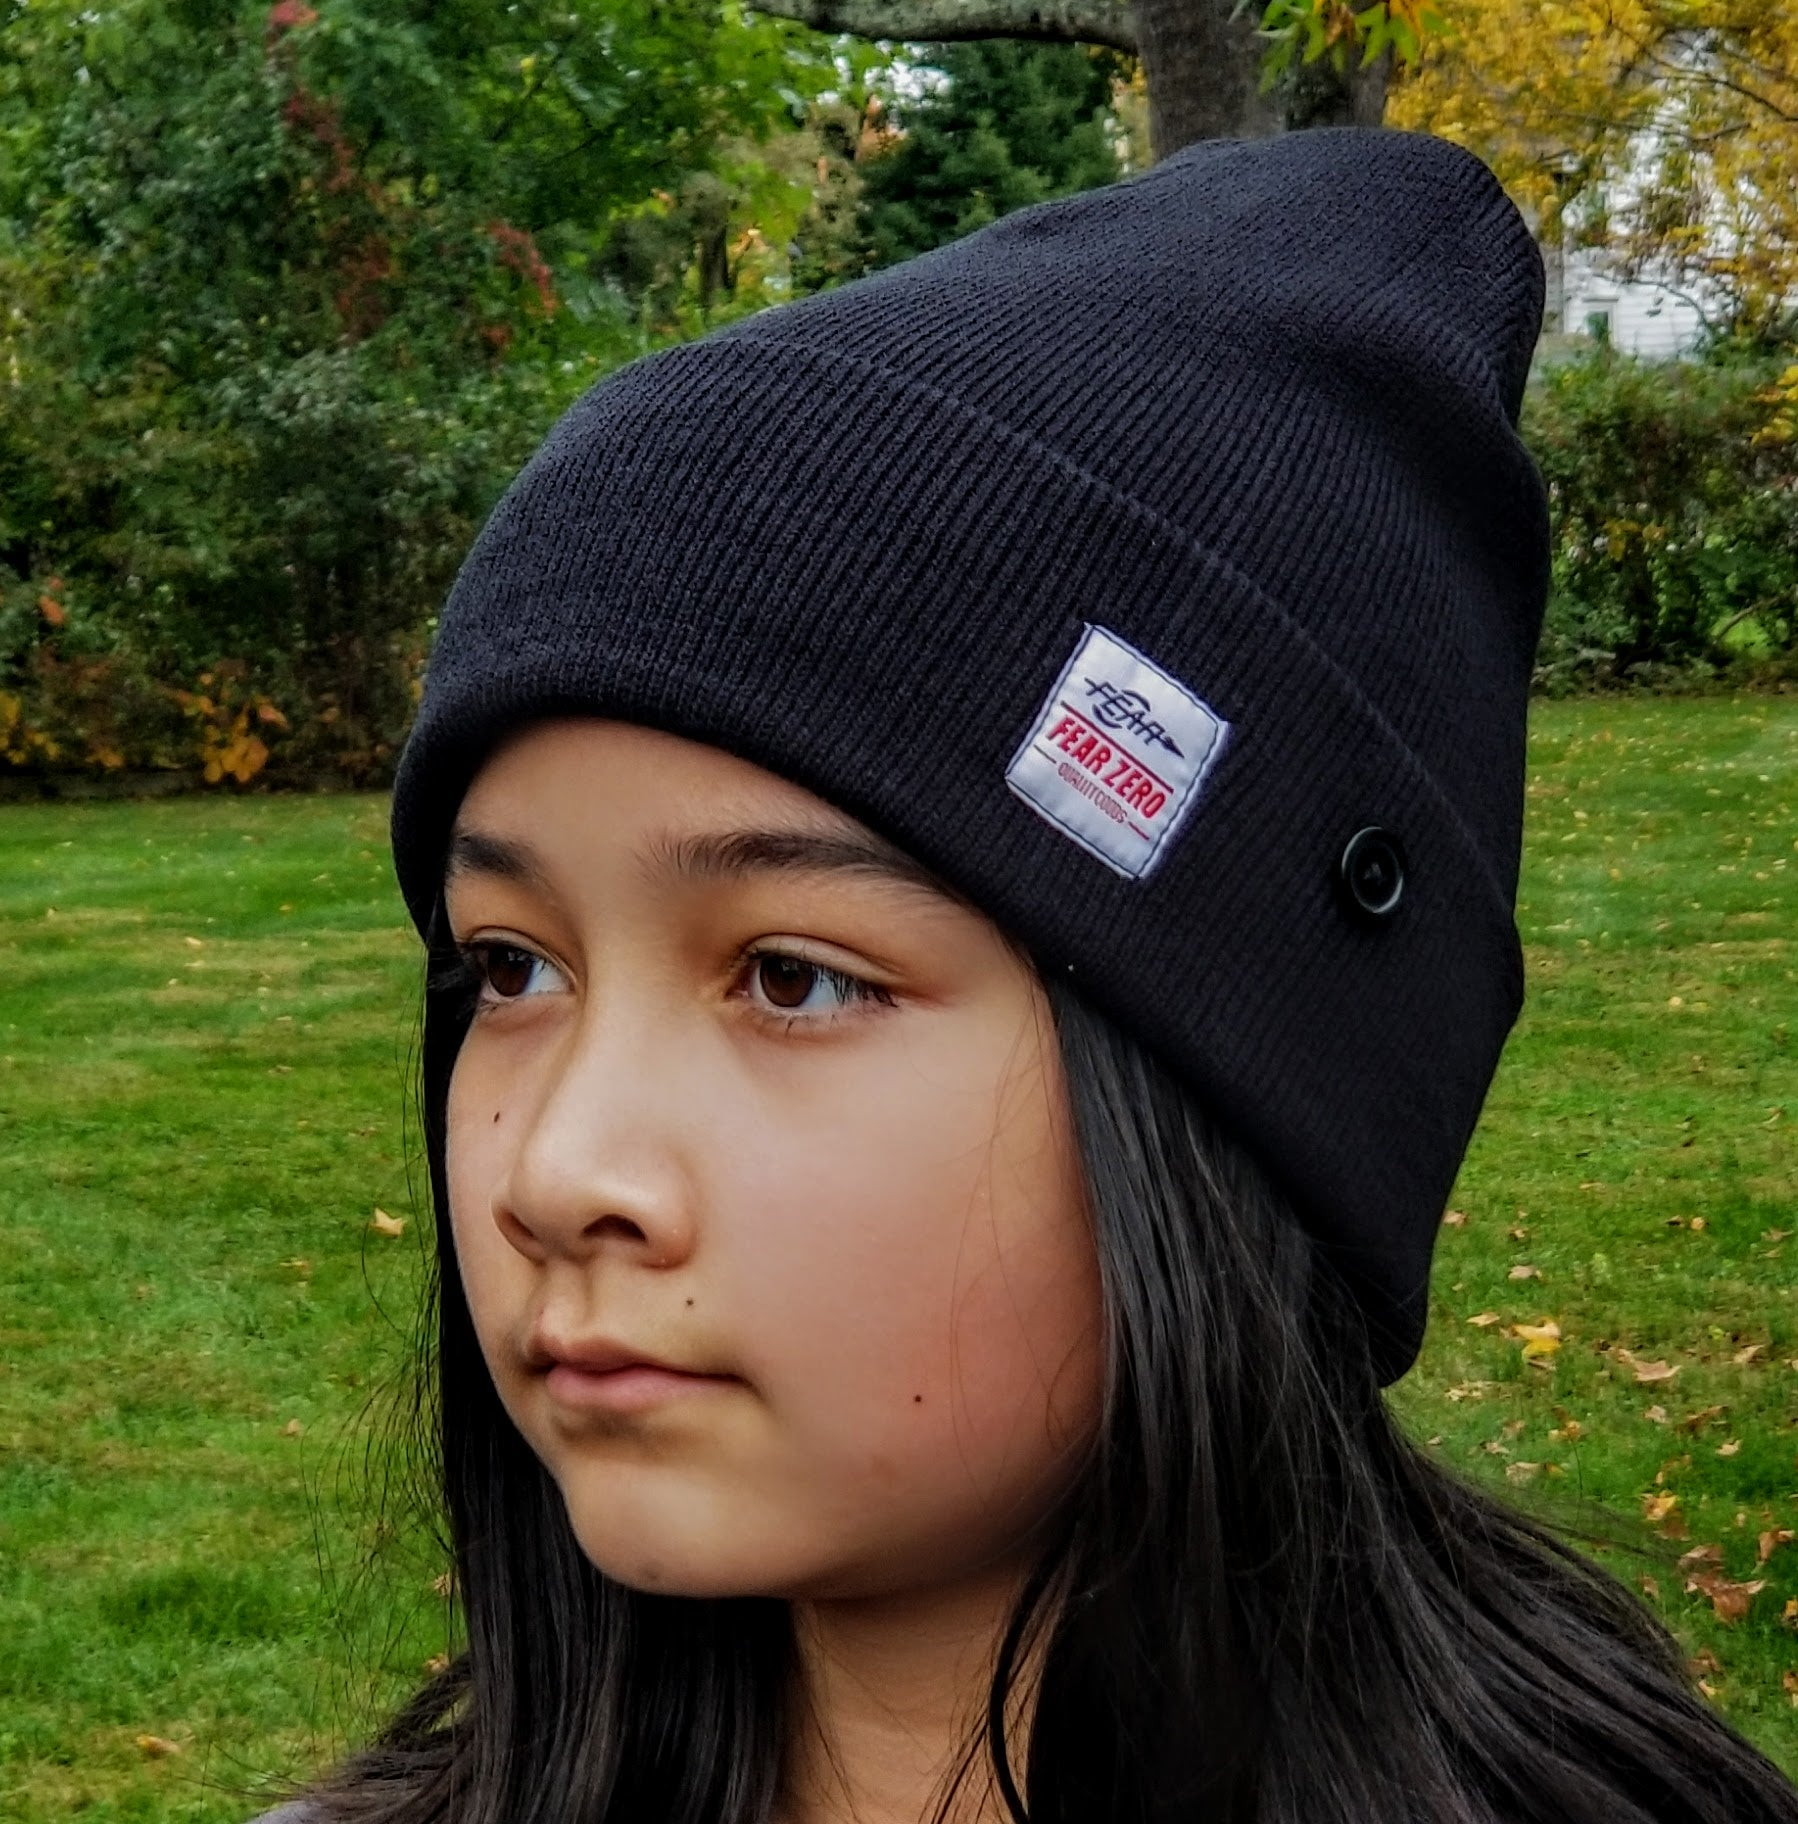 Fear0 Men/Women/Kid's Button Rib Fold Watch Cap Sport Beanie Hat for Skateboarding